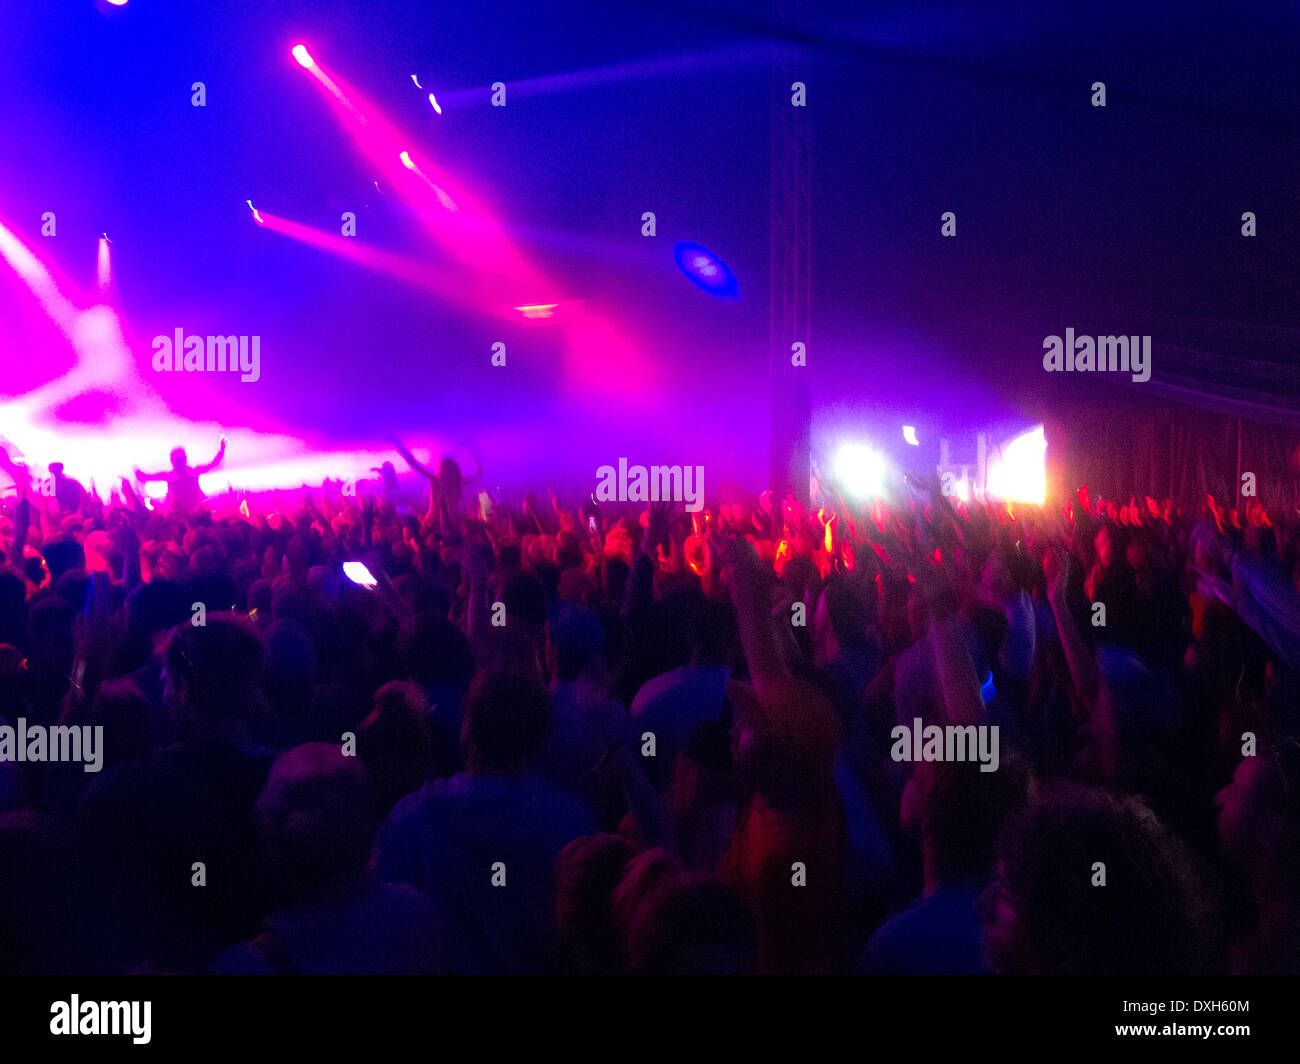 Crowd facing illuminated stage - Stock Image